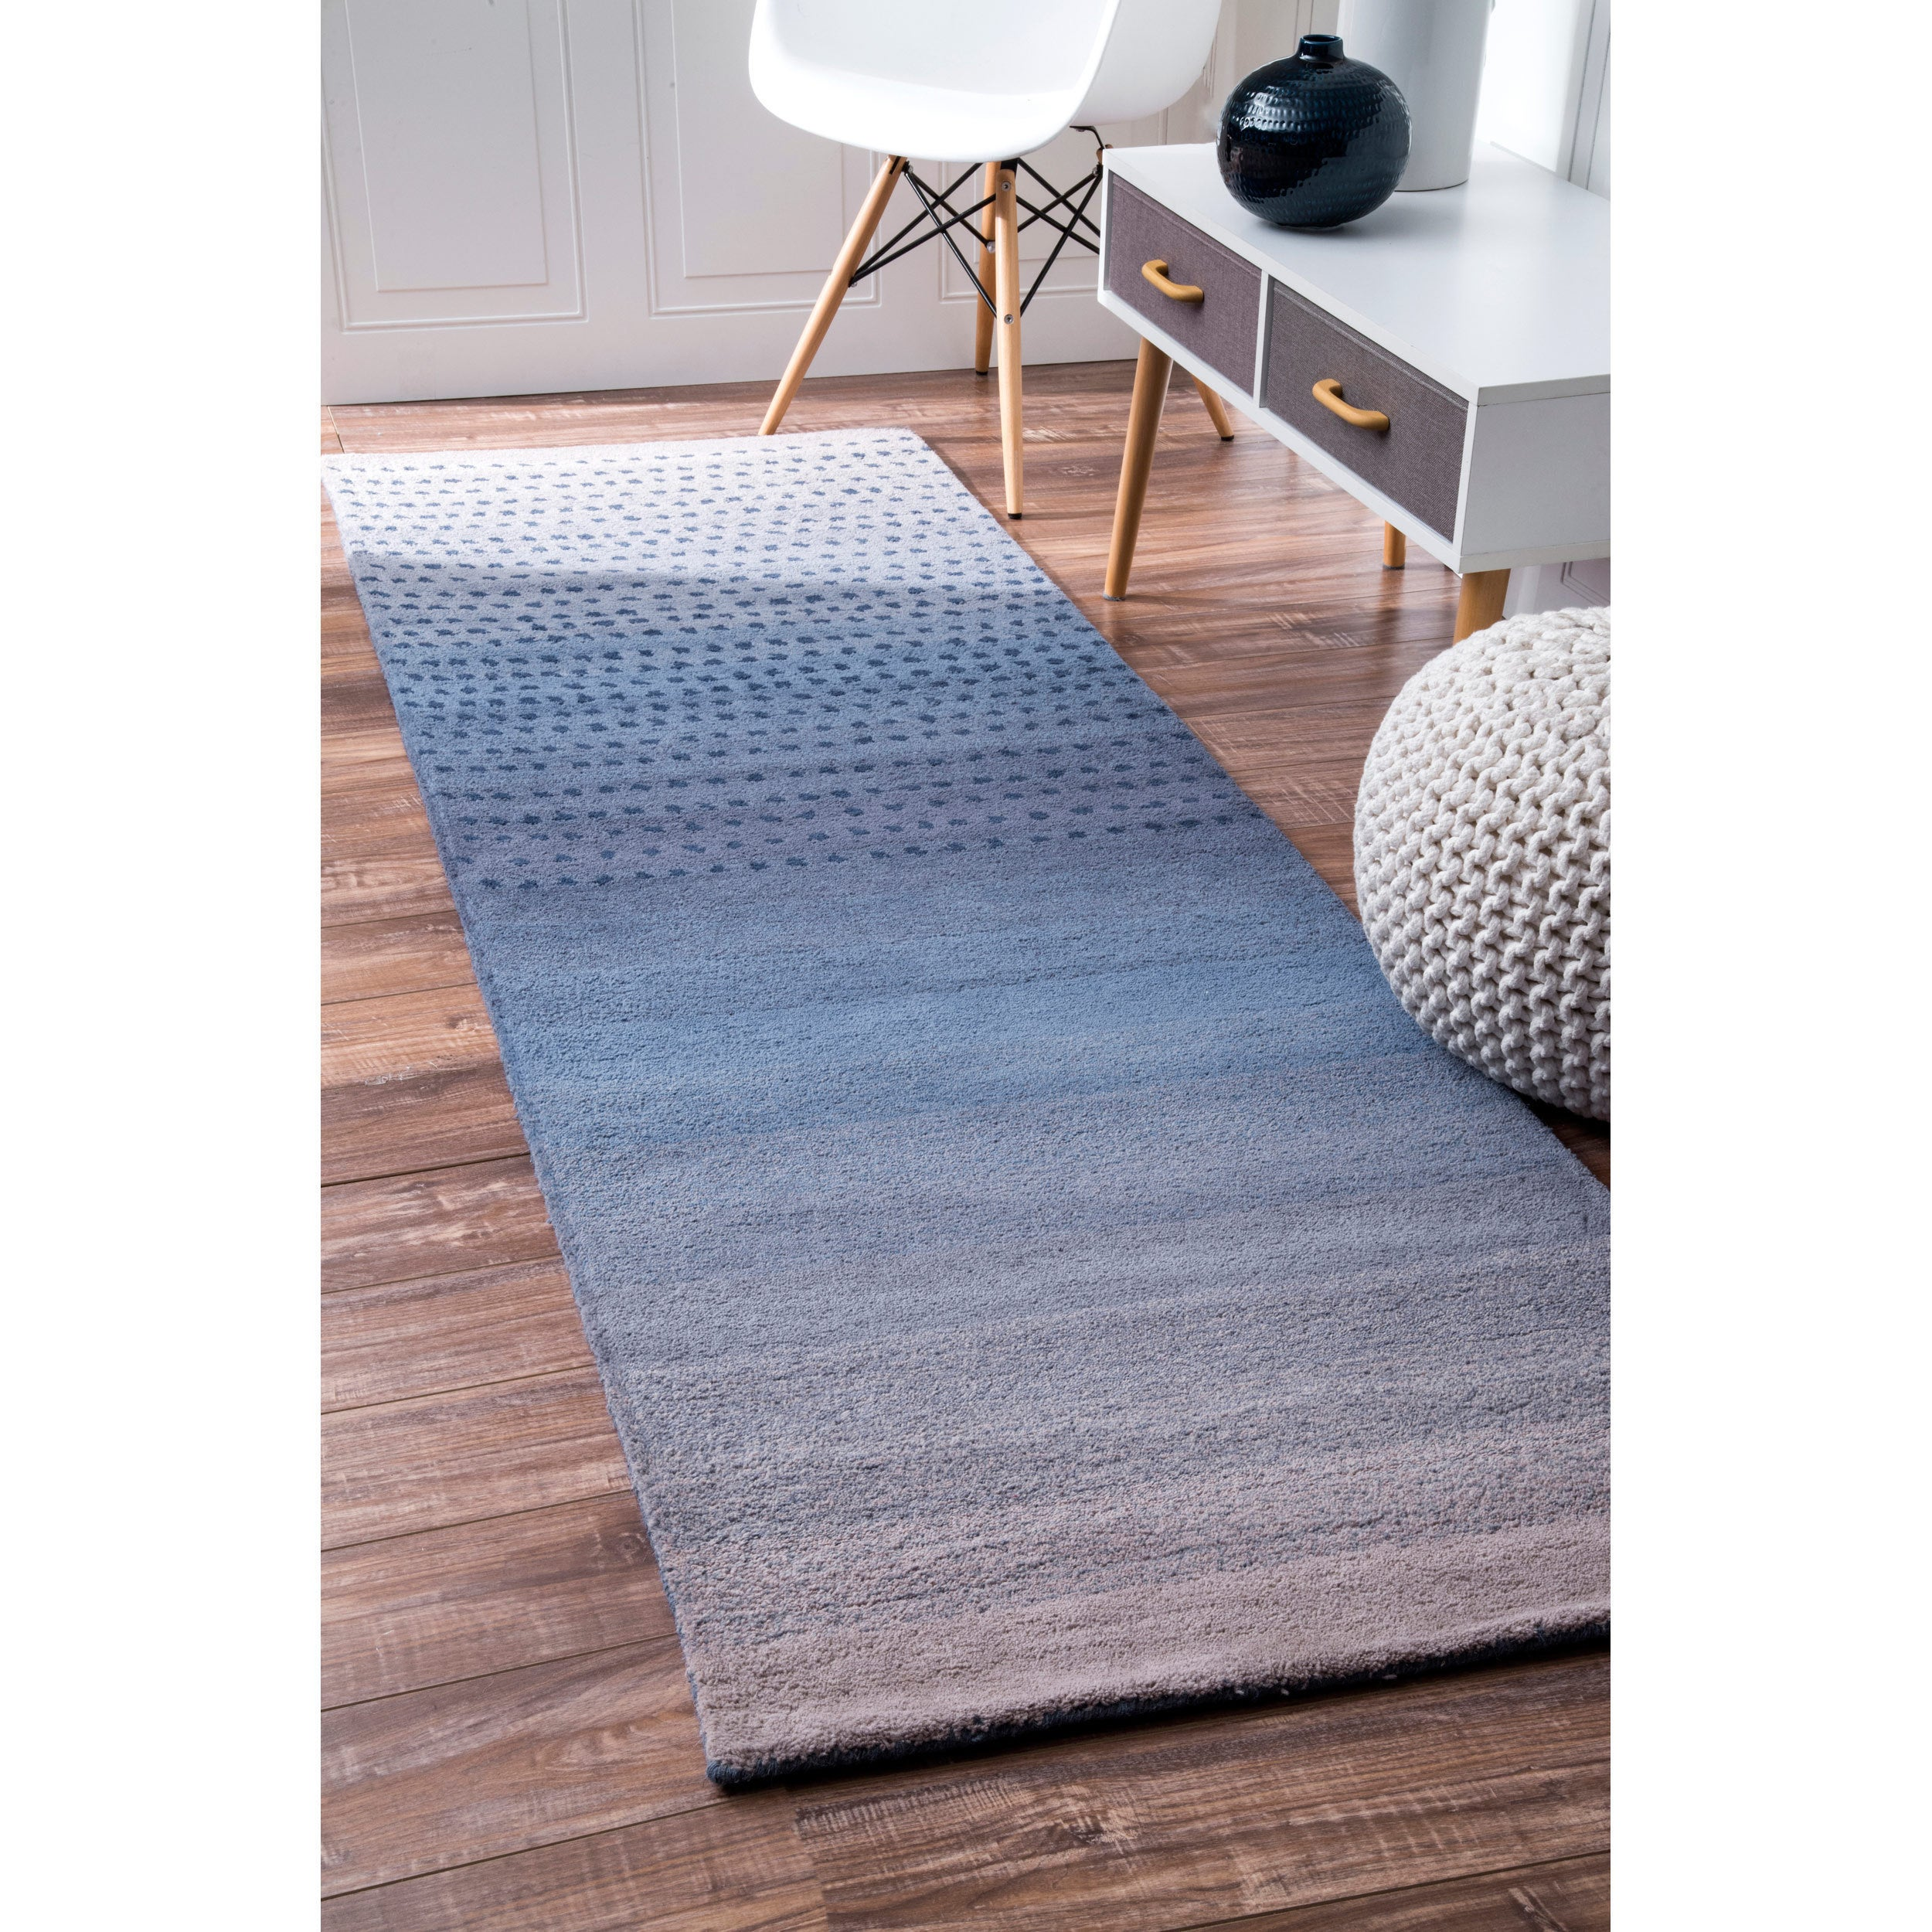 Shop Nuloom Handmade Ombre Wool Area Rug On Sale Overstock 7136323